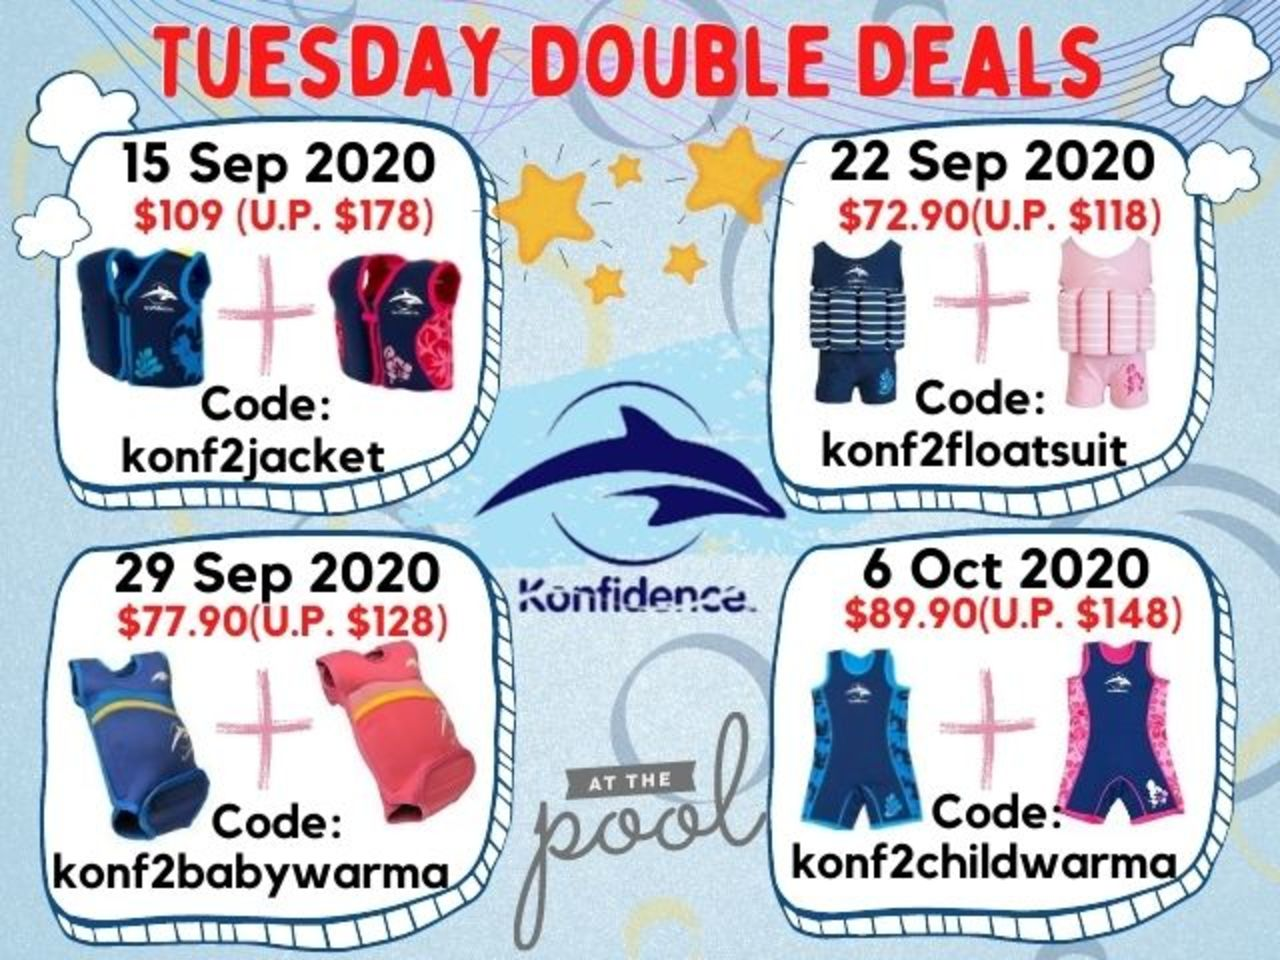 Tue 6 Oct Deal: The Konfidence ChildWarma Buy 2 at Only $89.90 (RRP $148)